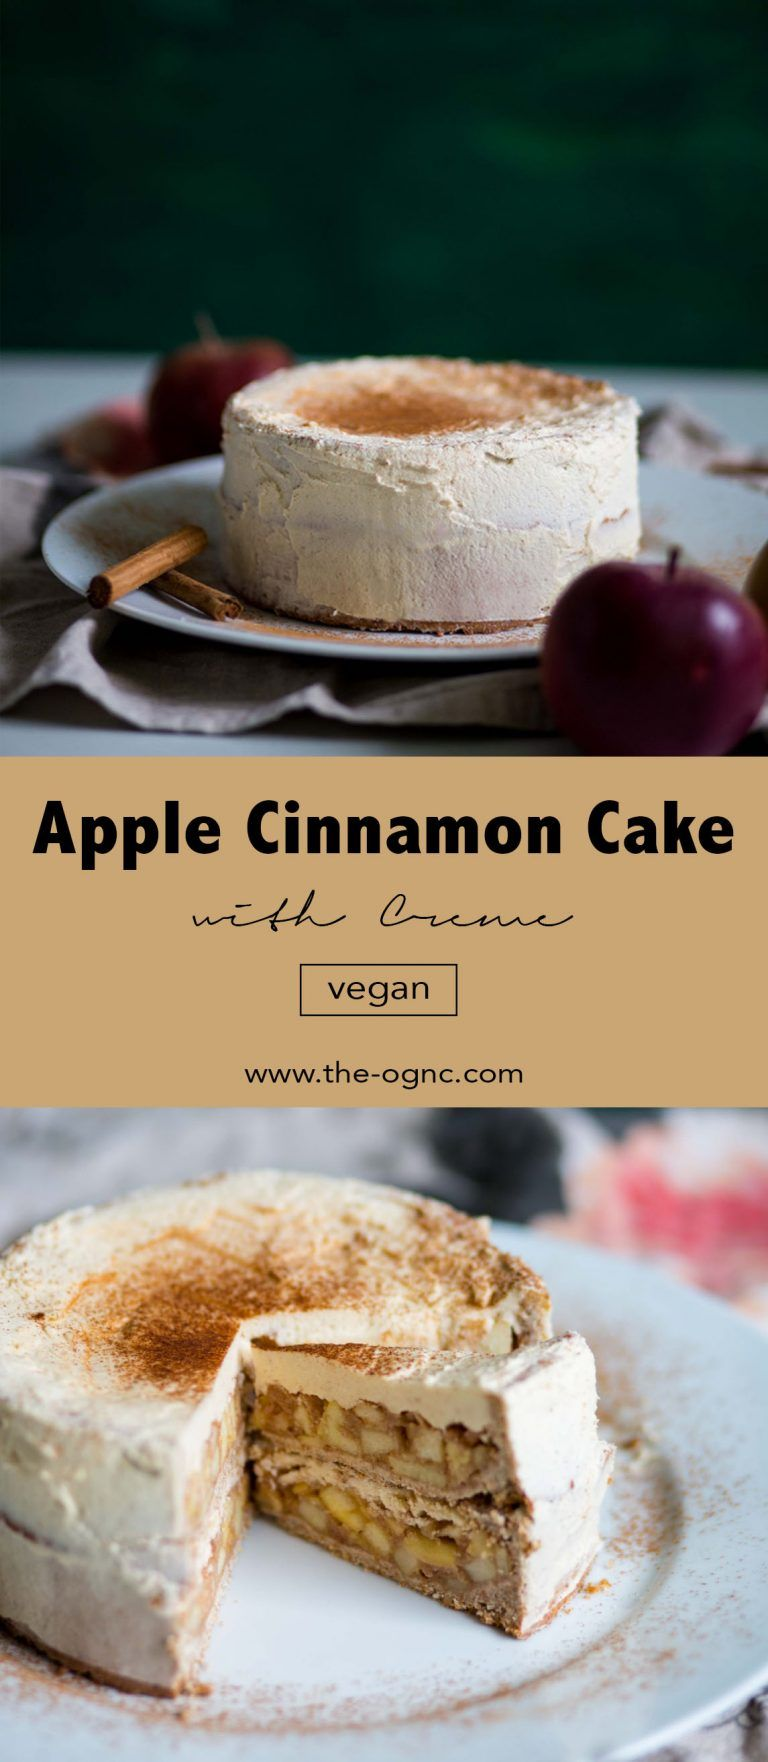 (Deutsch) Vegan Apple Cinnamon Cake with Cream - einfach und lecker